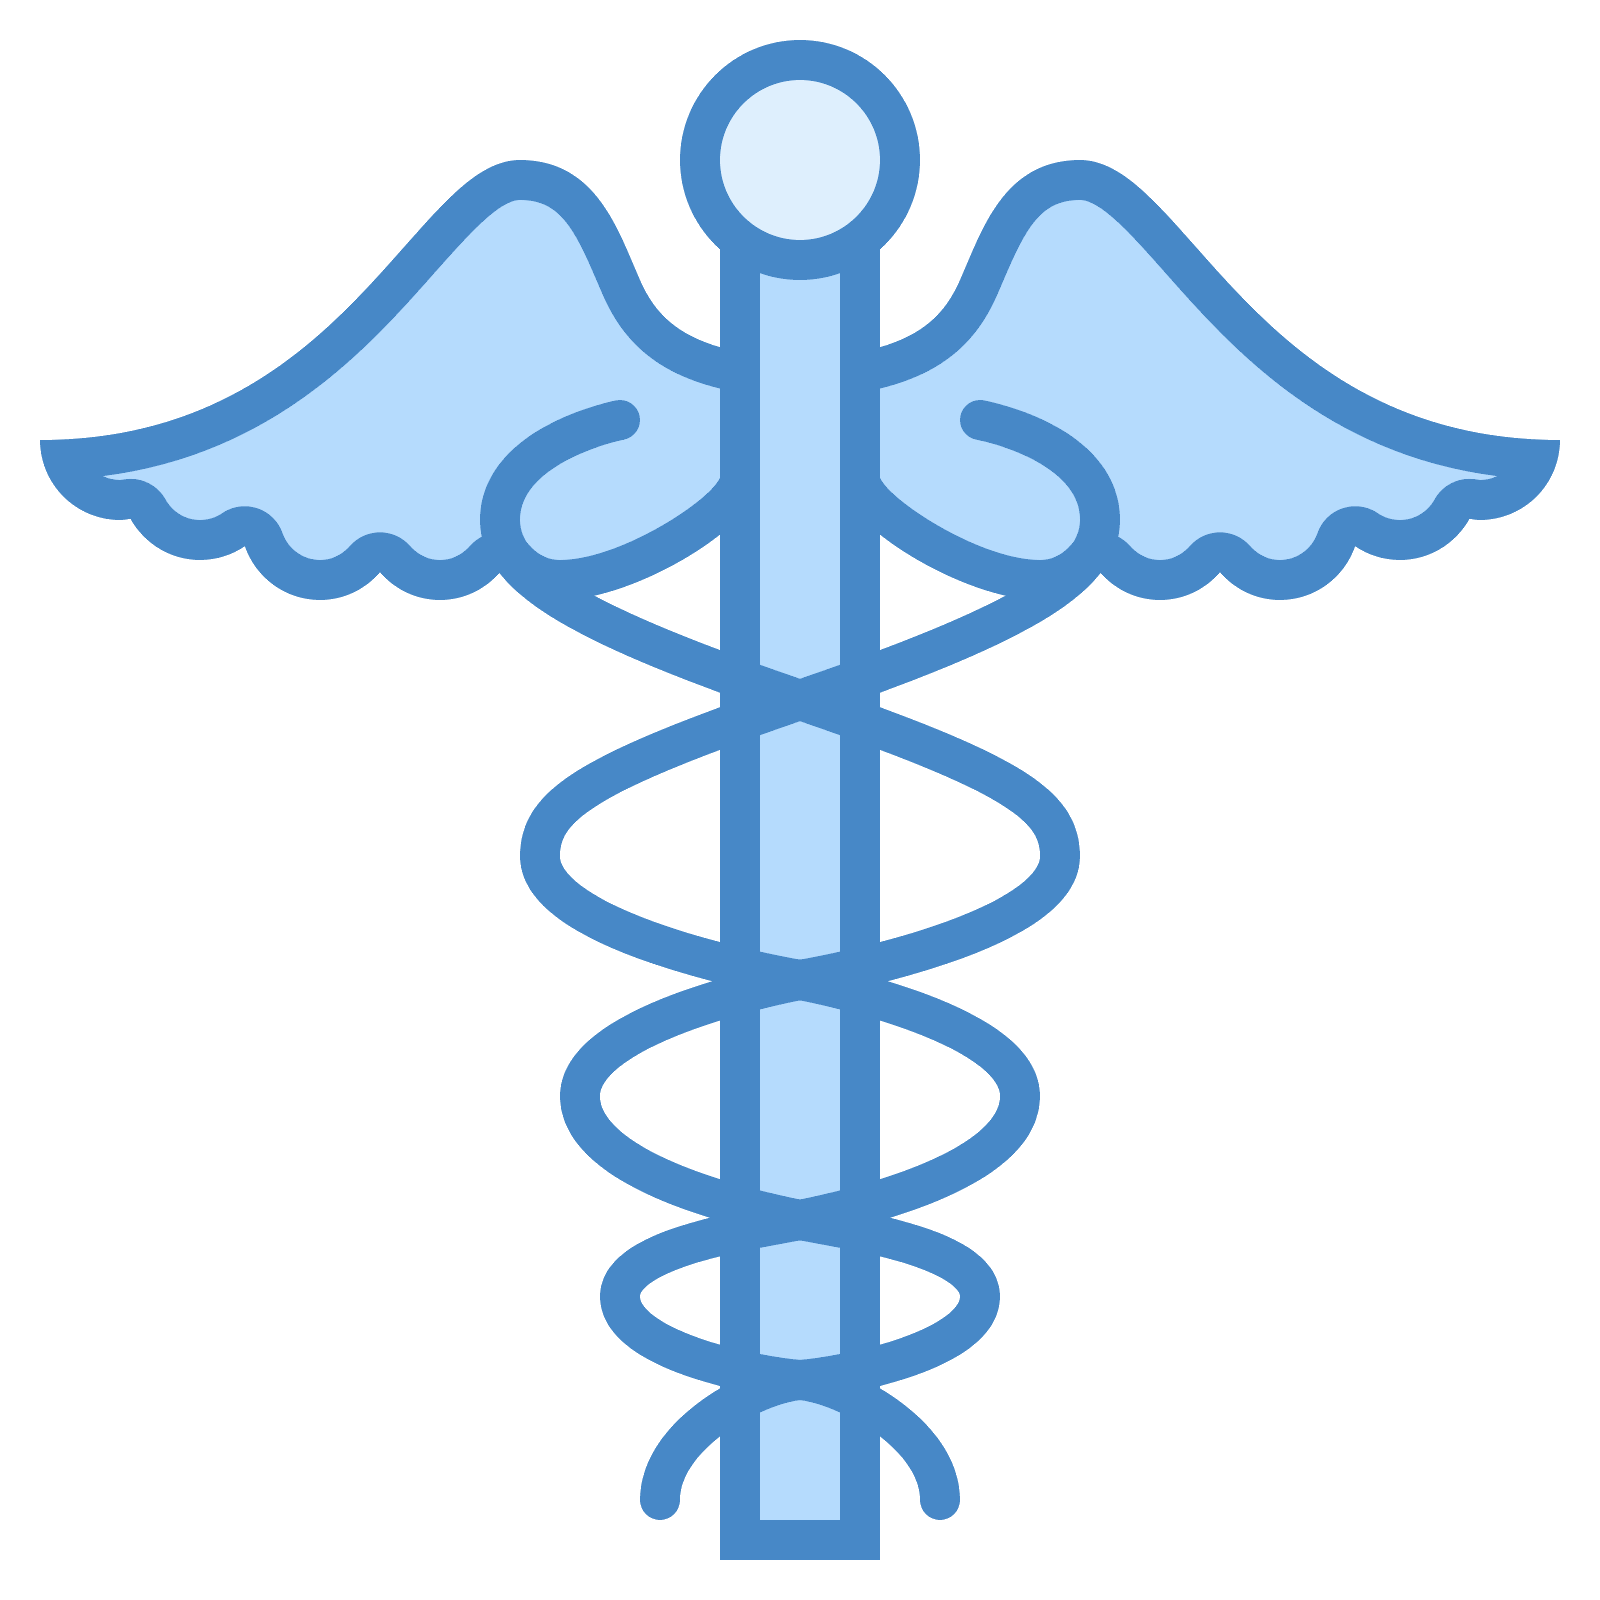 Medical clipart health issue. Staff of hermes medicine